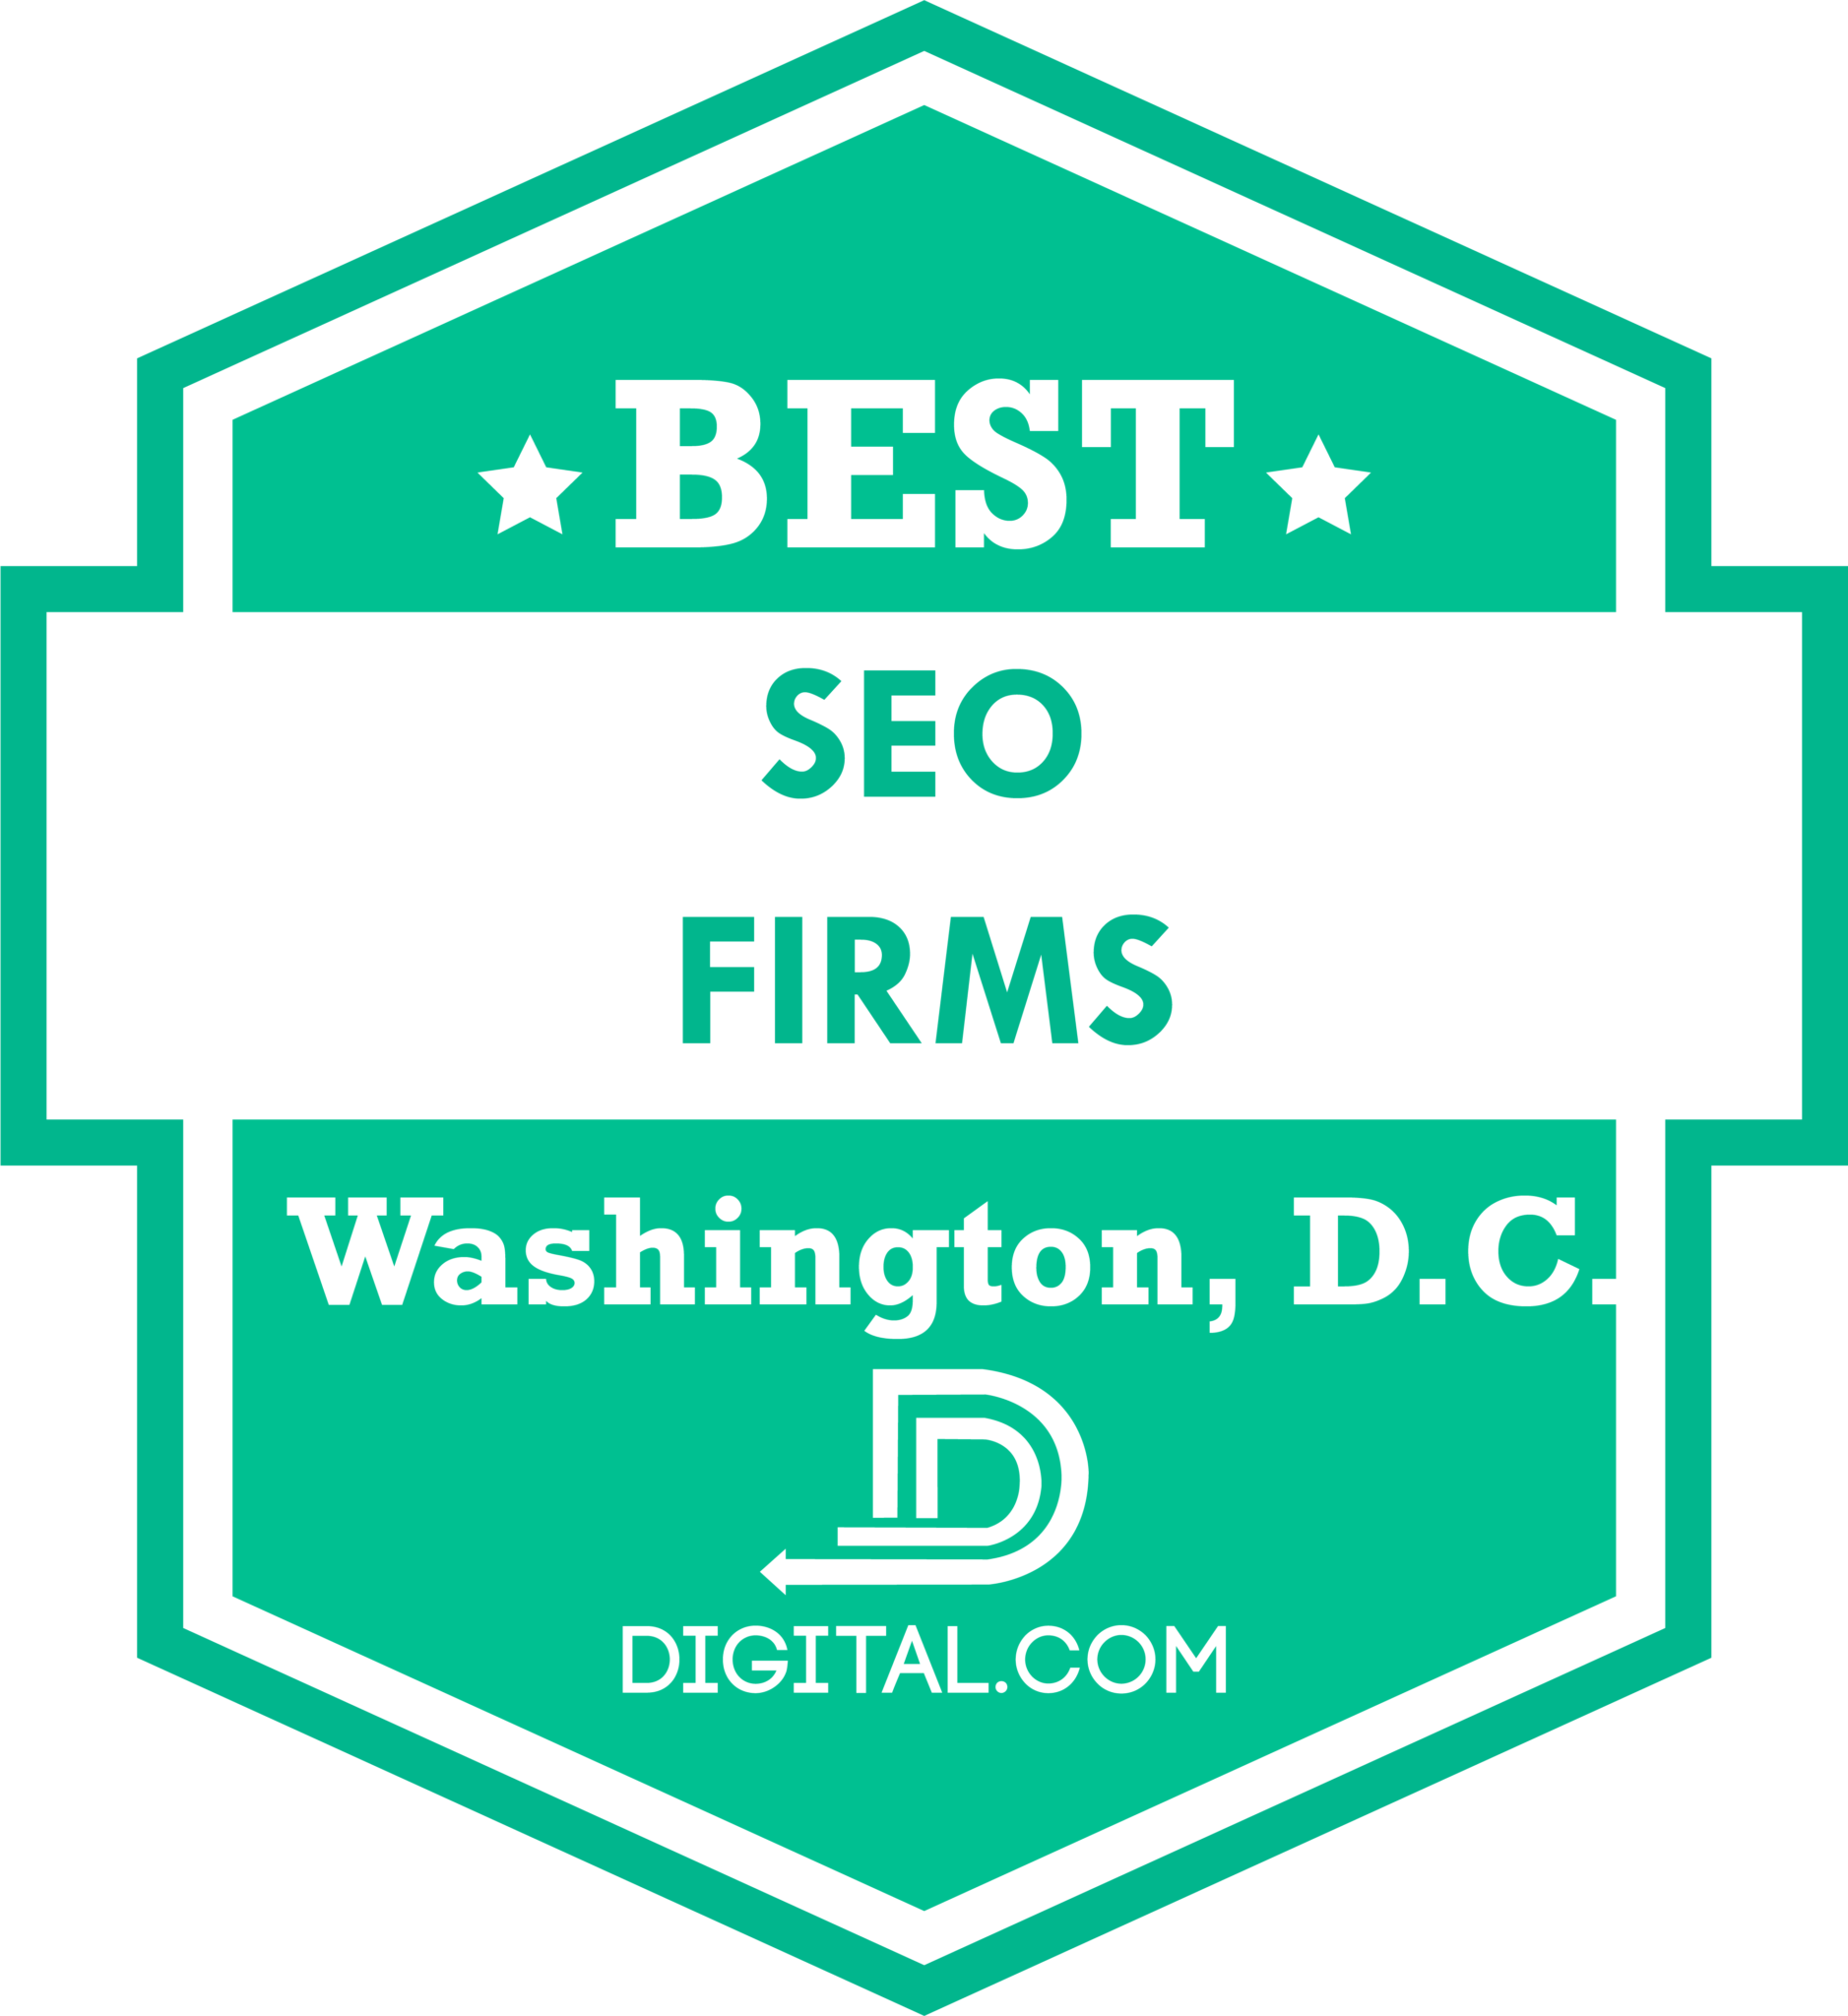 Ask the Egghead, Inc. Named Best SEO Firm in Washington DC by Digital.com